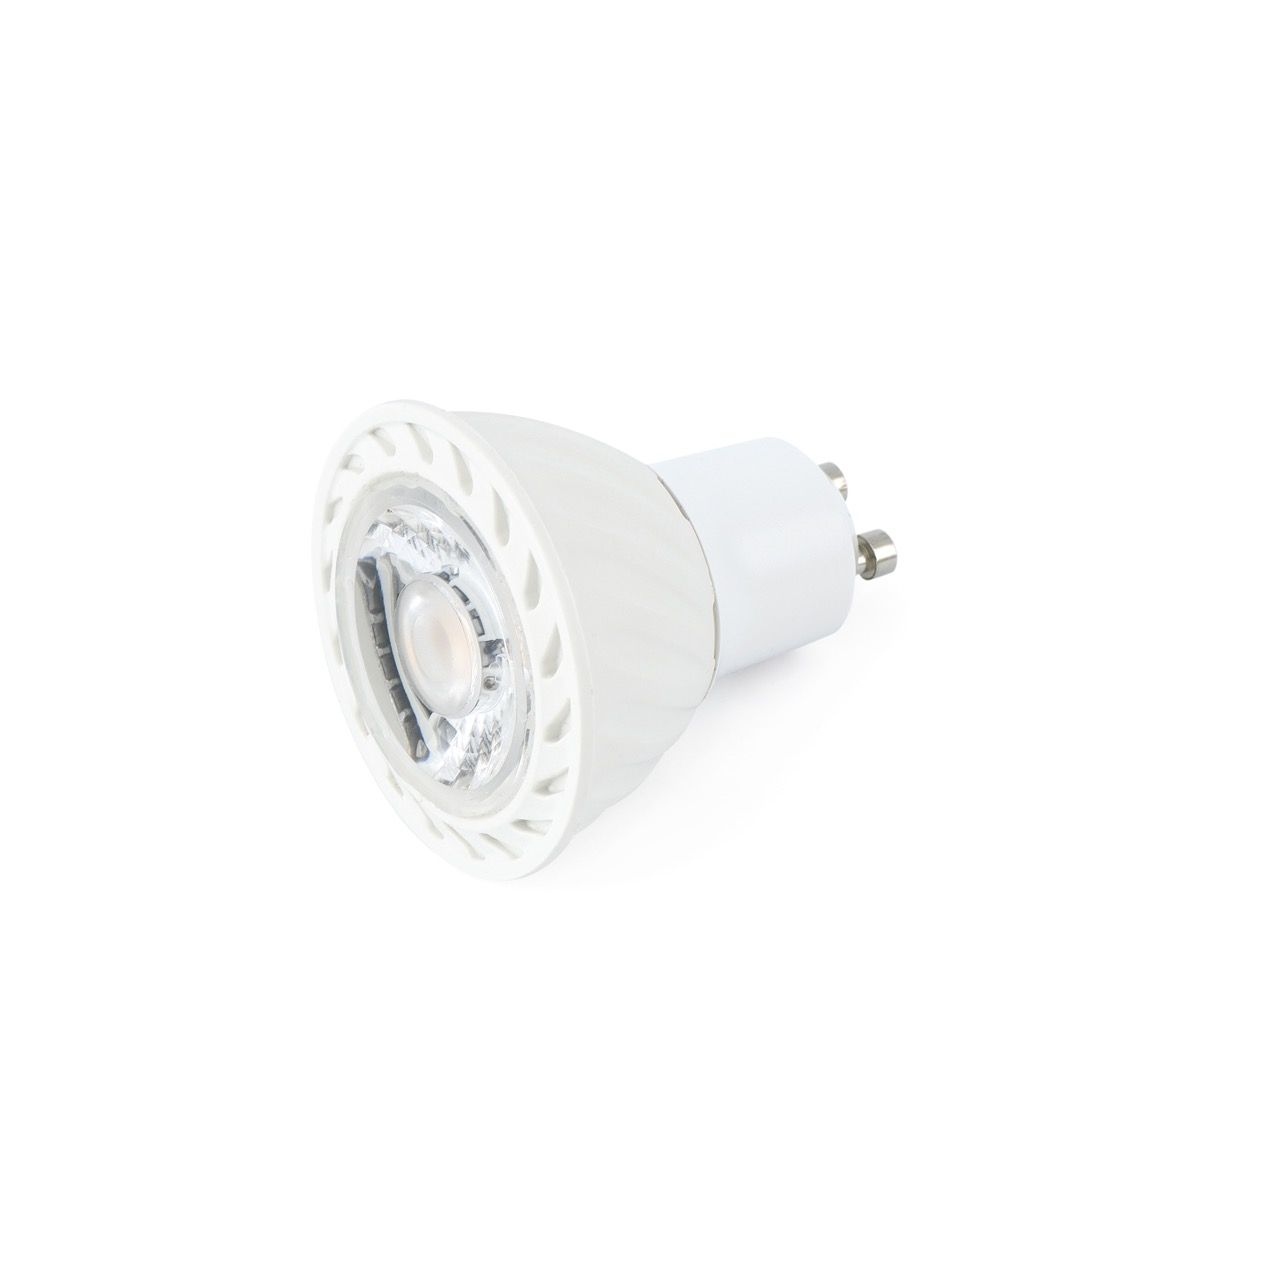 Bombilla Led 8w Regulable Fria 480lm Bombillas Led Bombillas Led